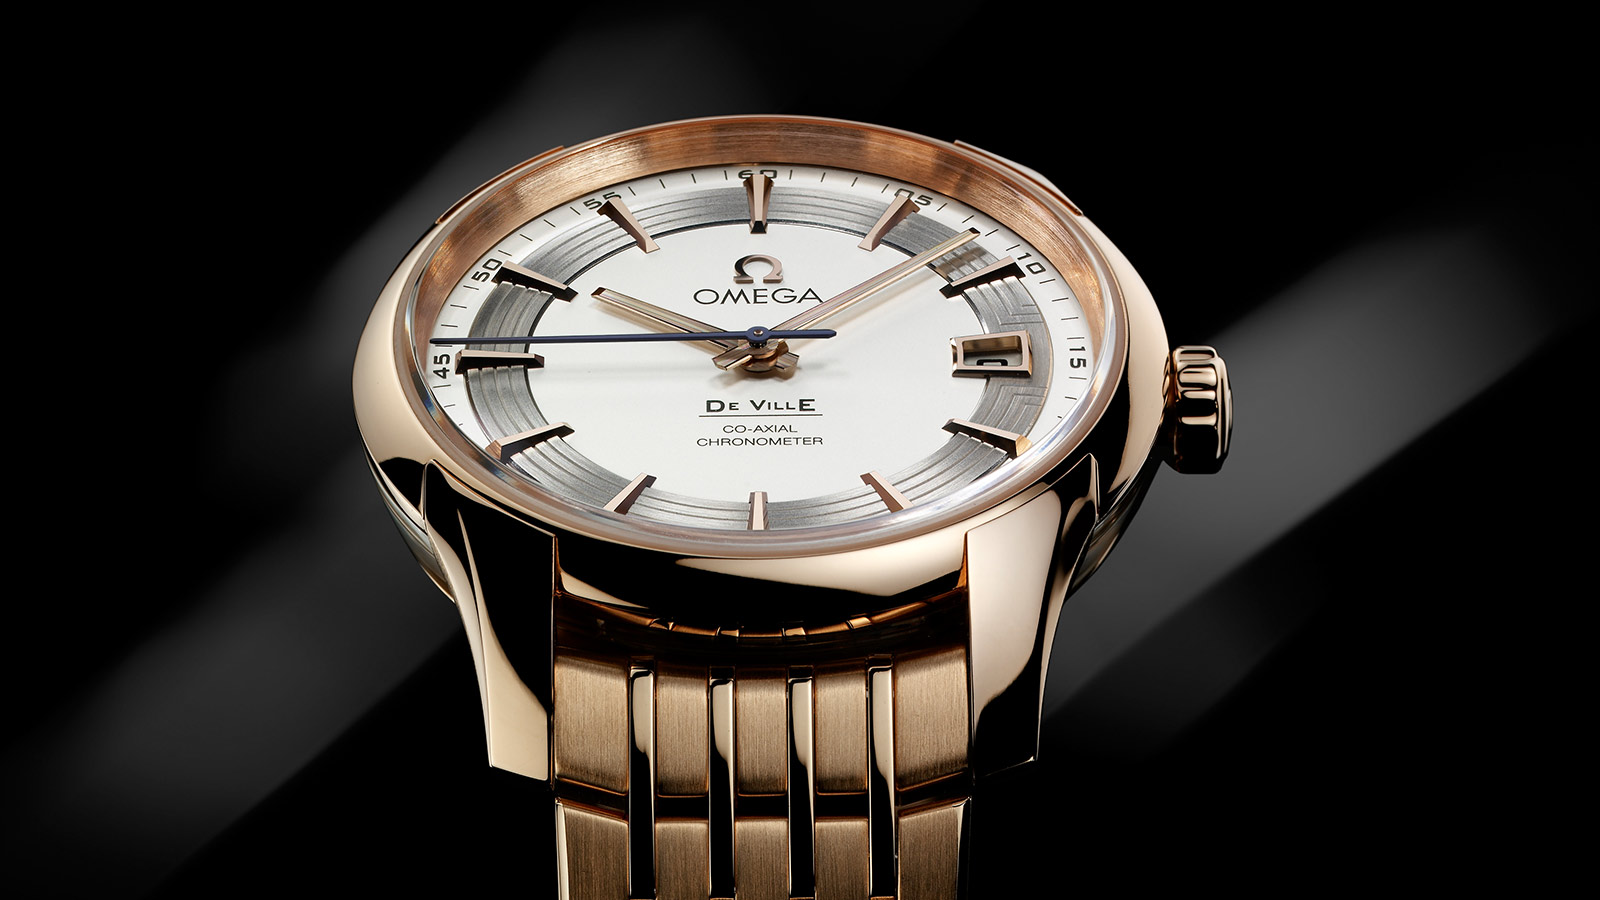 De Ville Hour Vision Hour Vision Omega Co‑Axial 41 mm - 431.60.41.21.02.001 - View 3